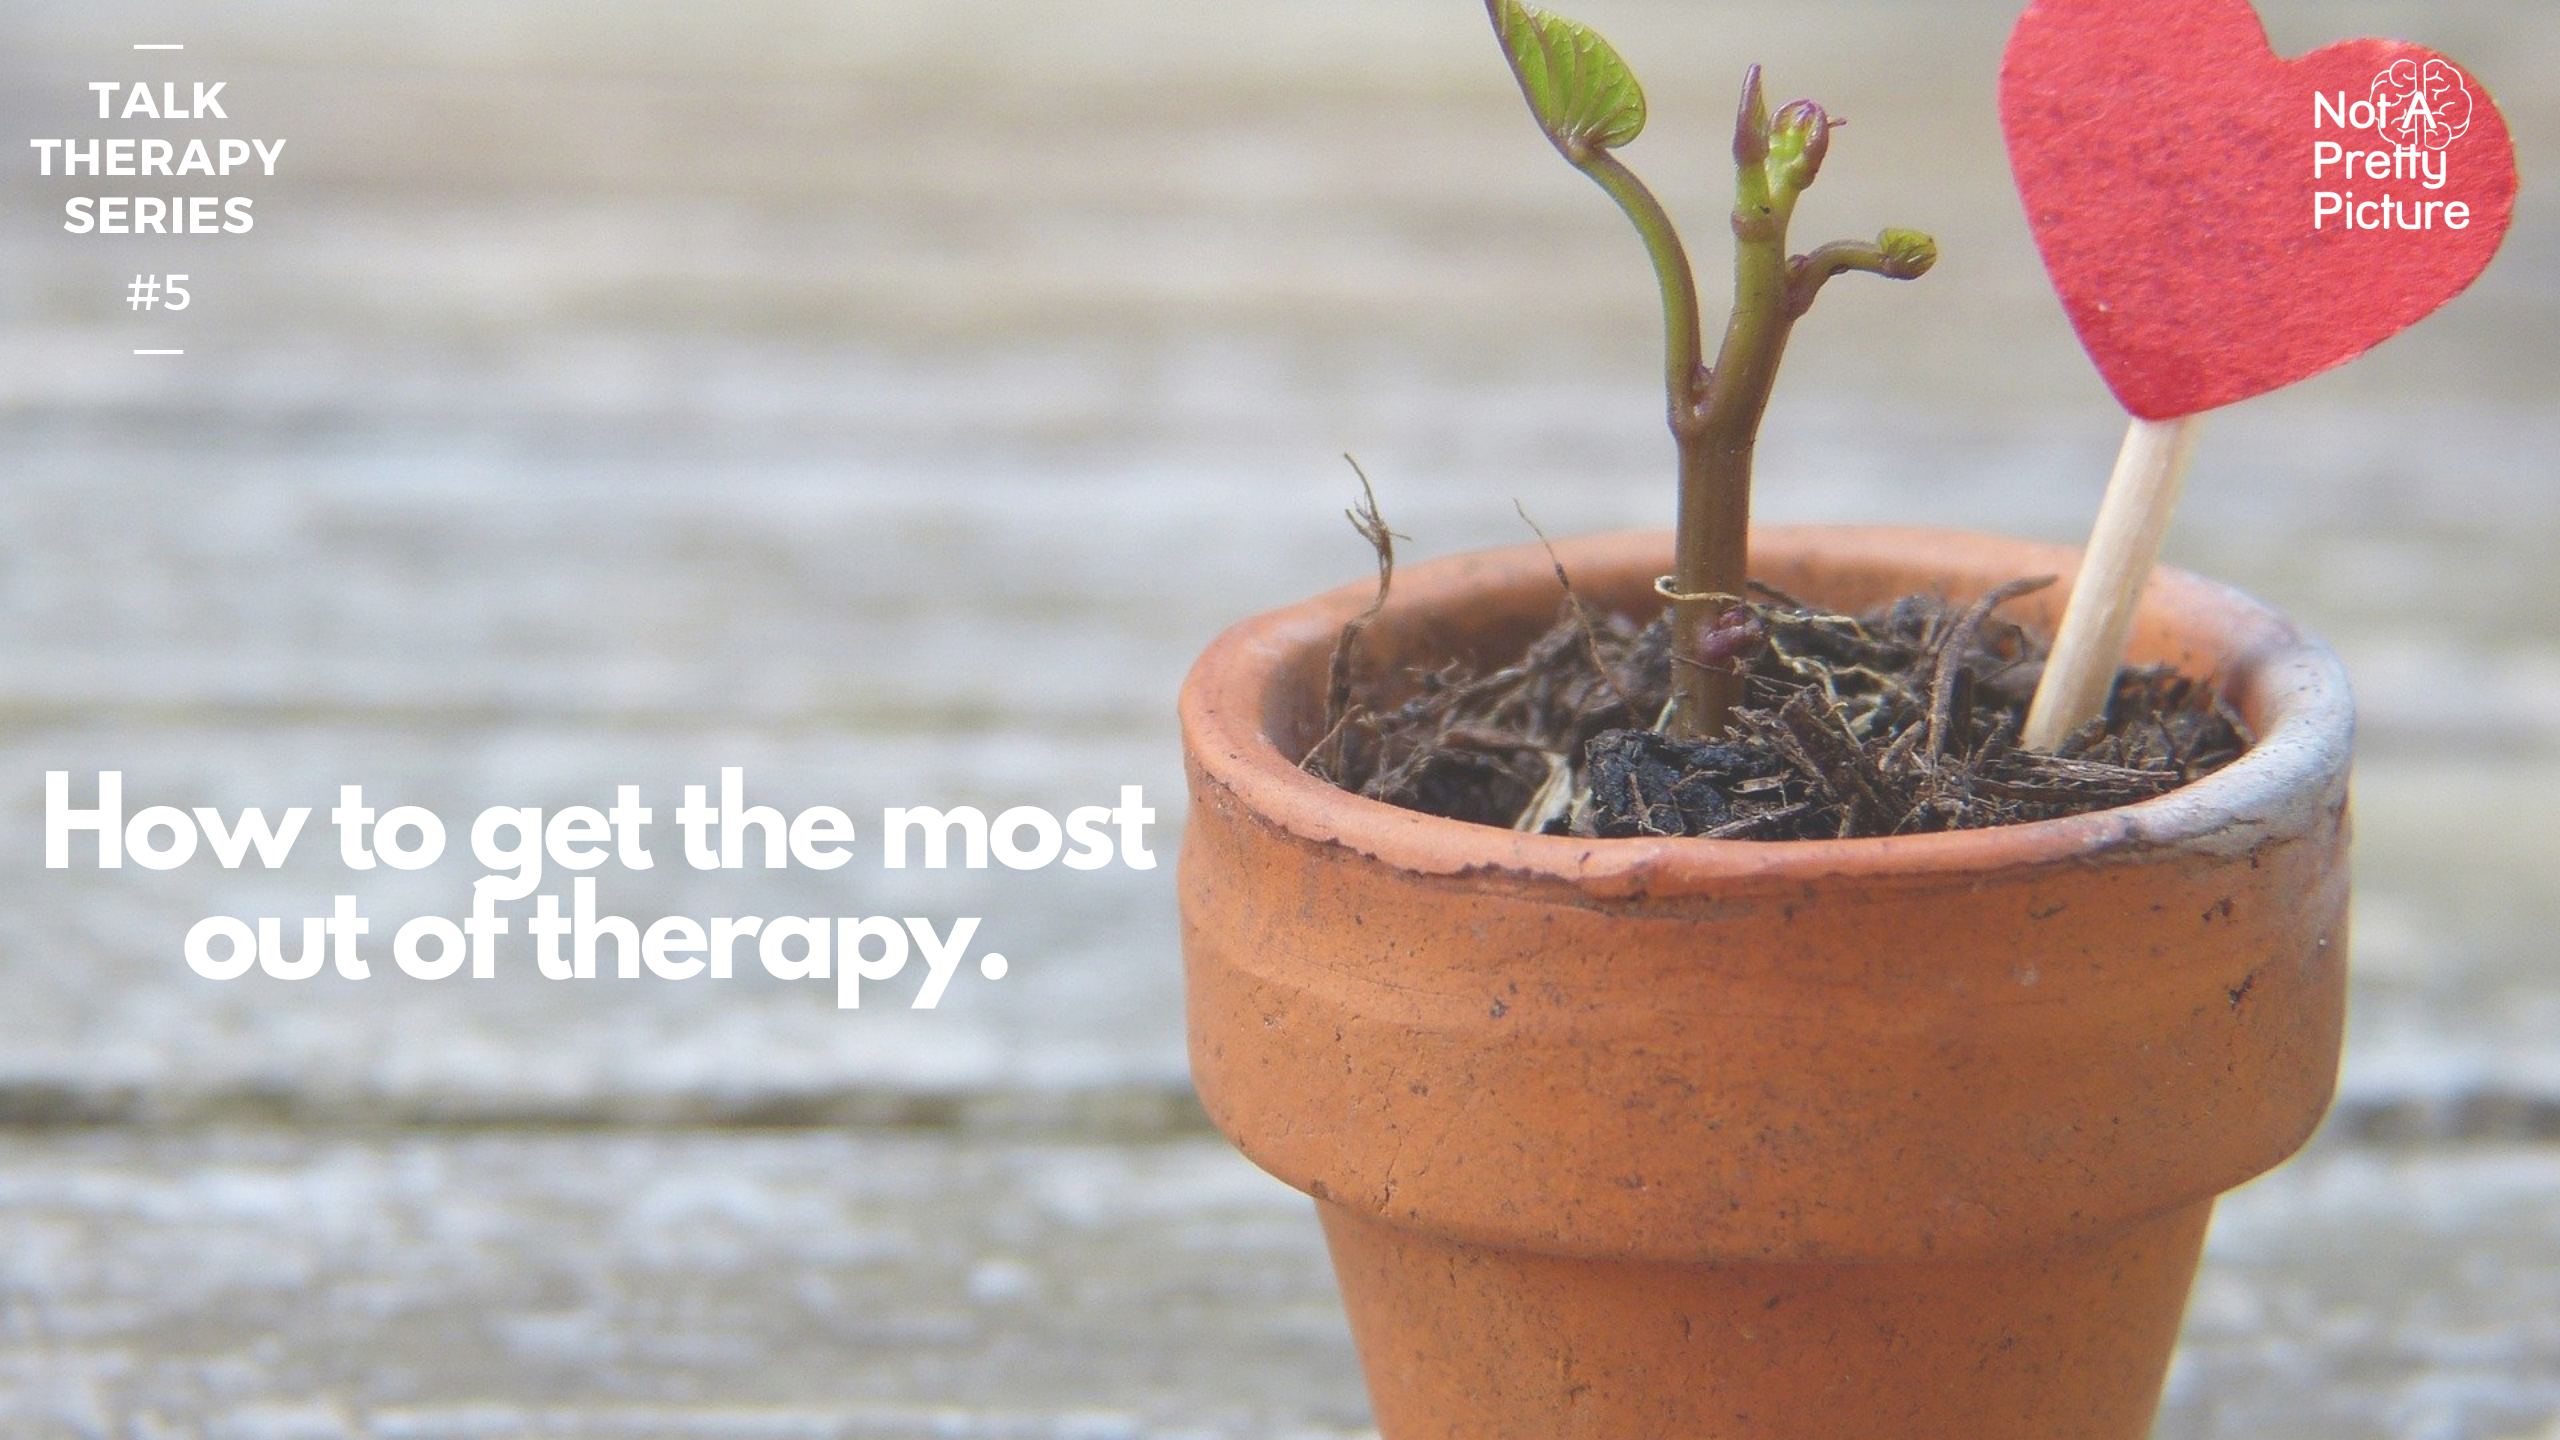 How to get the most out of your therapy sessions